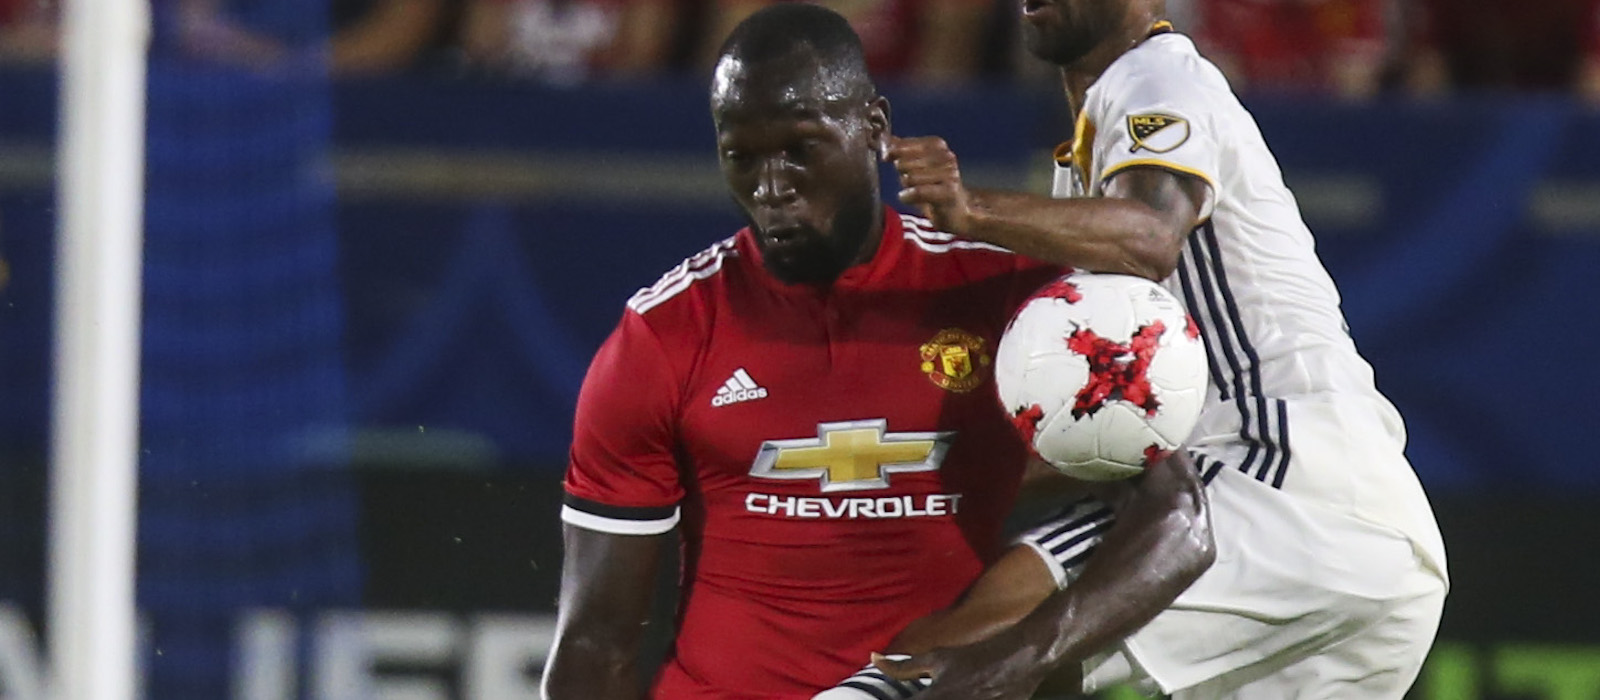 Michael Carrick tells Romelu Lukaku what to expect at Manchester United next season